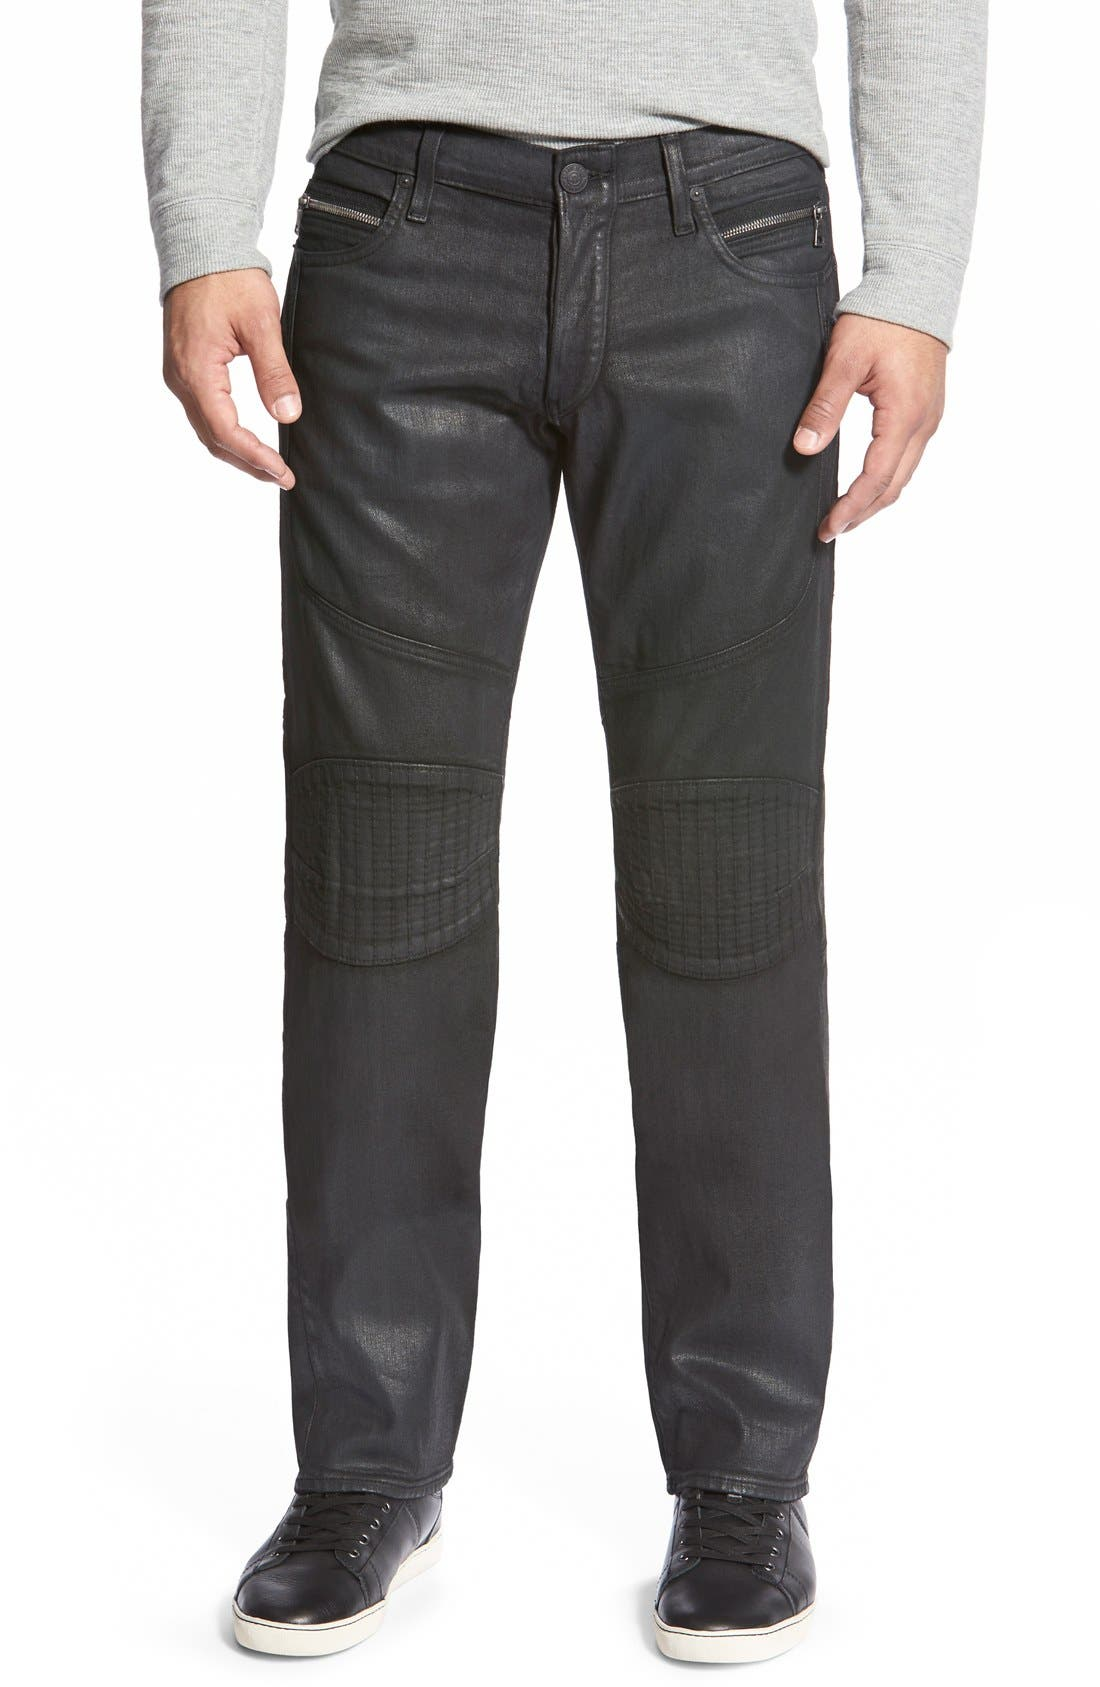 x Russell Westbrook 'Geno' Straight Leg Moto Jeans,                             Main thumbnail 1, color,                             003